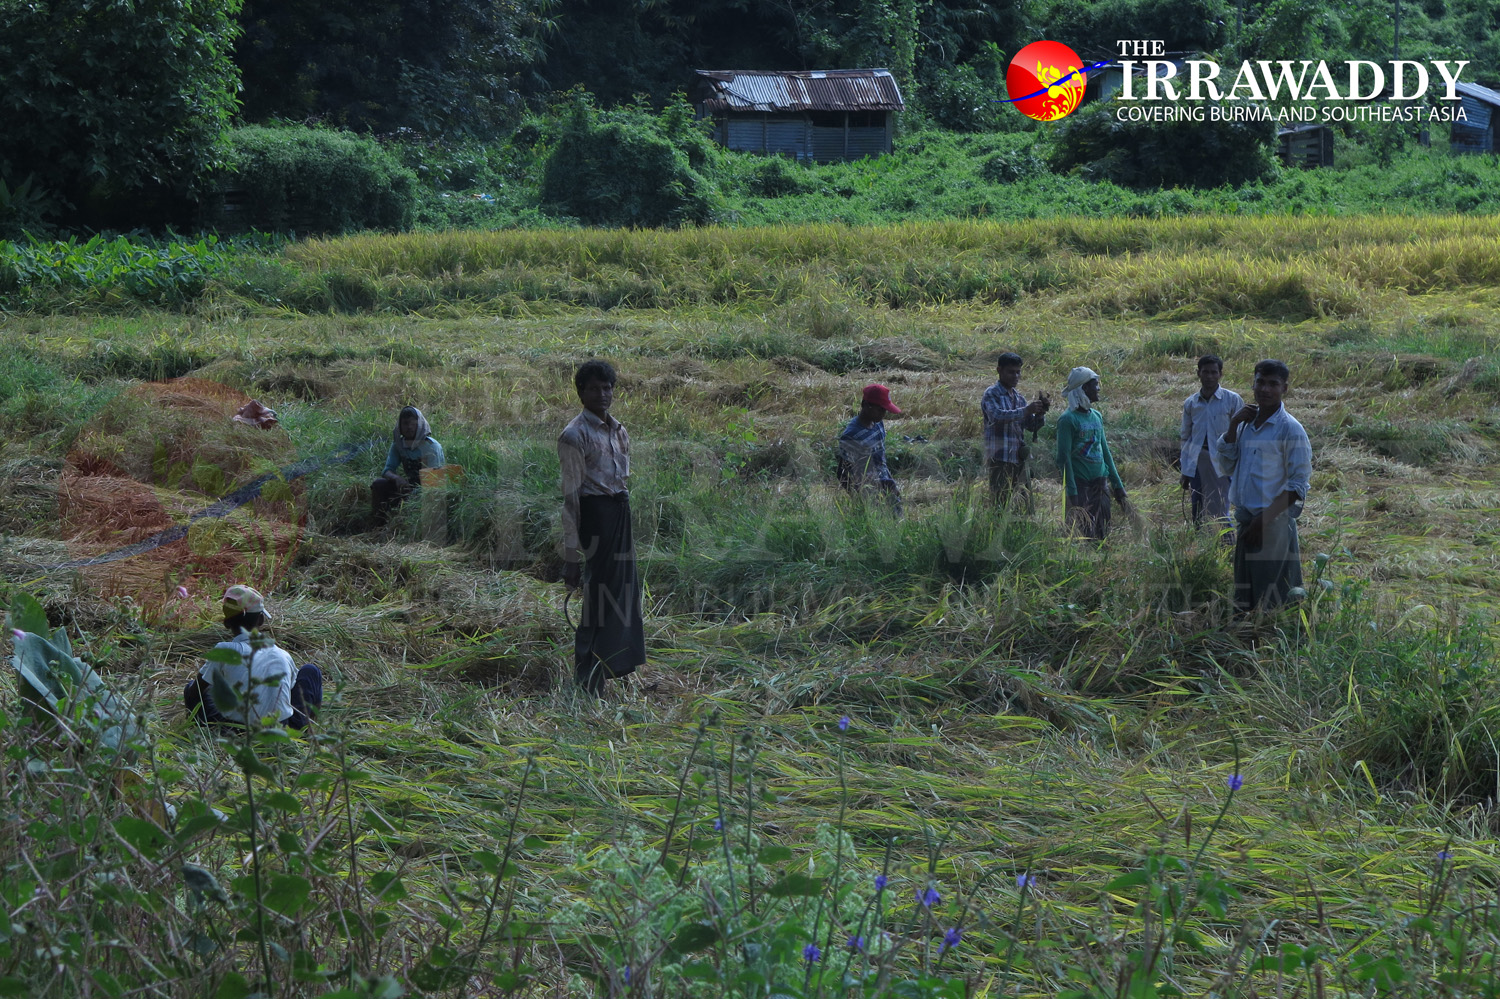 Muslim villagers work as day laborers harvesting rice near the destroyed village of Wa Piek in Maungdaw Township. (Photo: Moe Myint / The Irrawaddy)